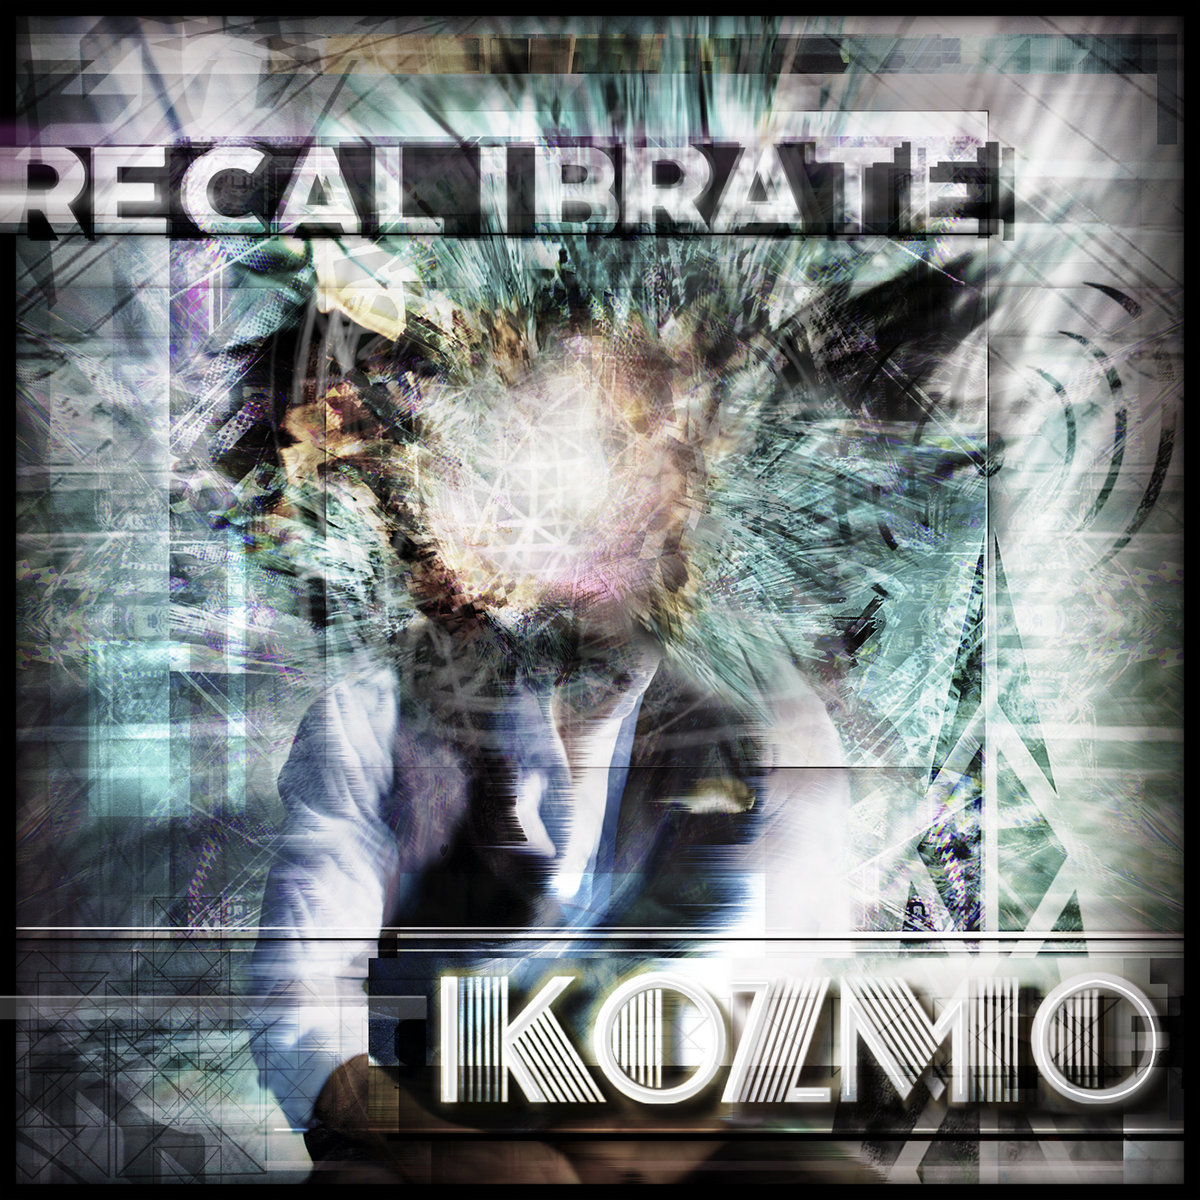 Kozmo - Silent But Deadly @ 'Recalibrate' album (bass, electronic)